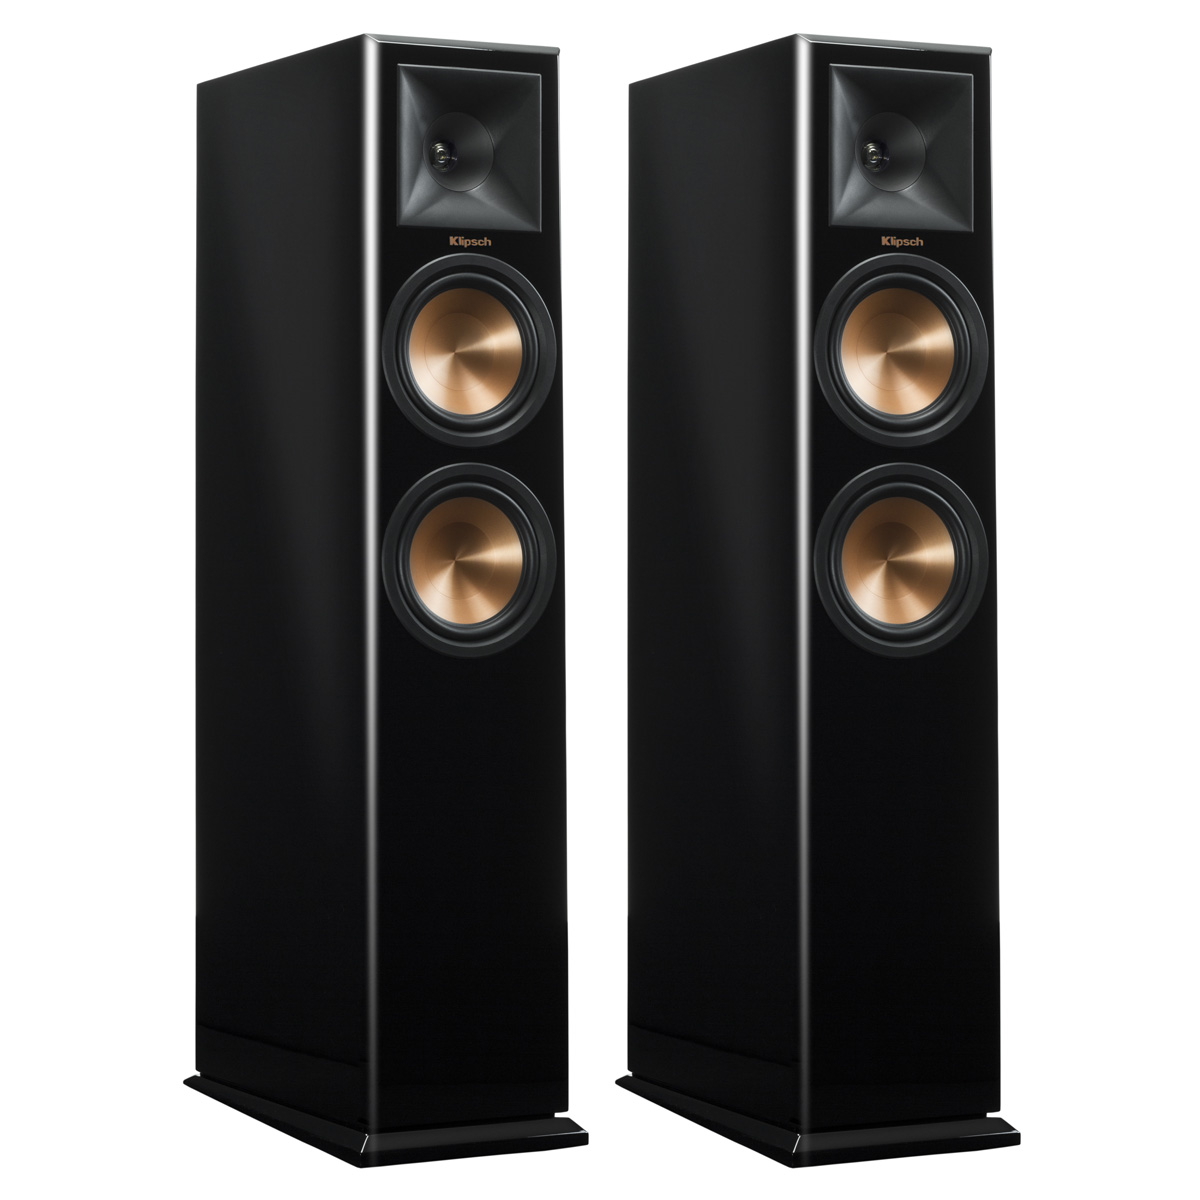 Klipsch RP-260F Reference Premiere Floorstanding Speakers with Dual 6.5 inch Cerametallic Cone Woofers Pair (Piano... by Klipsch